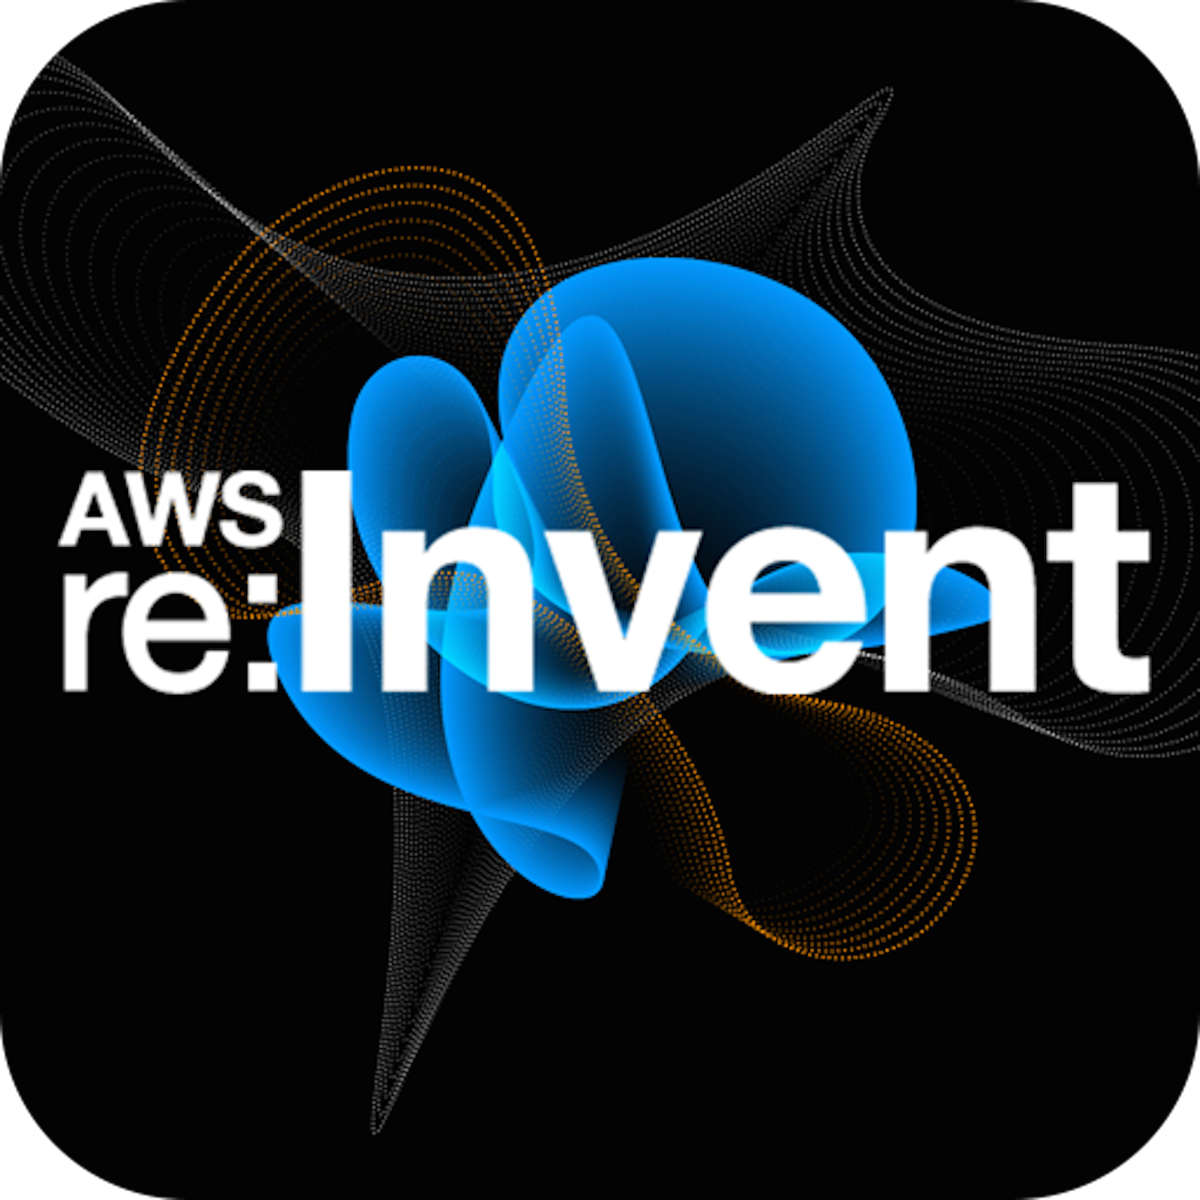 Best episodes of AWS re:Invent 2016 | Podyssey Podcasts